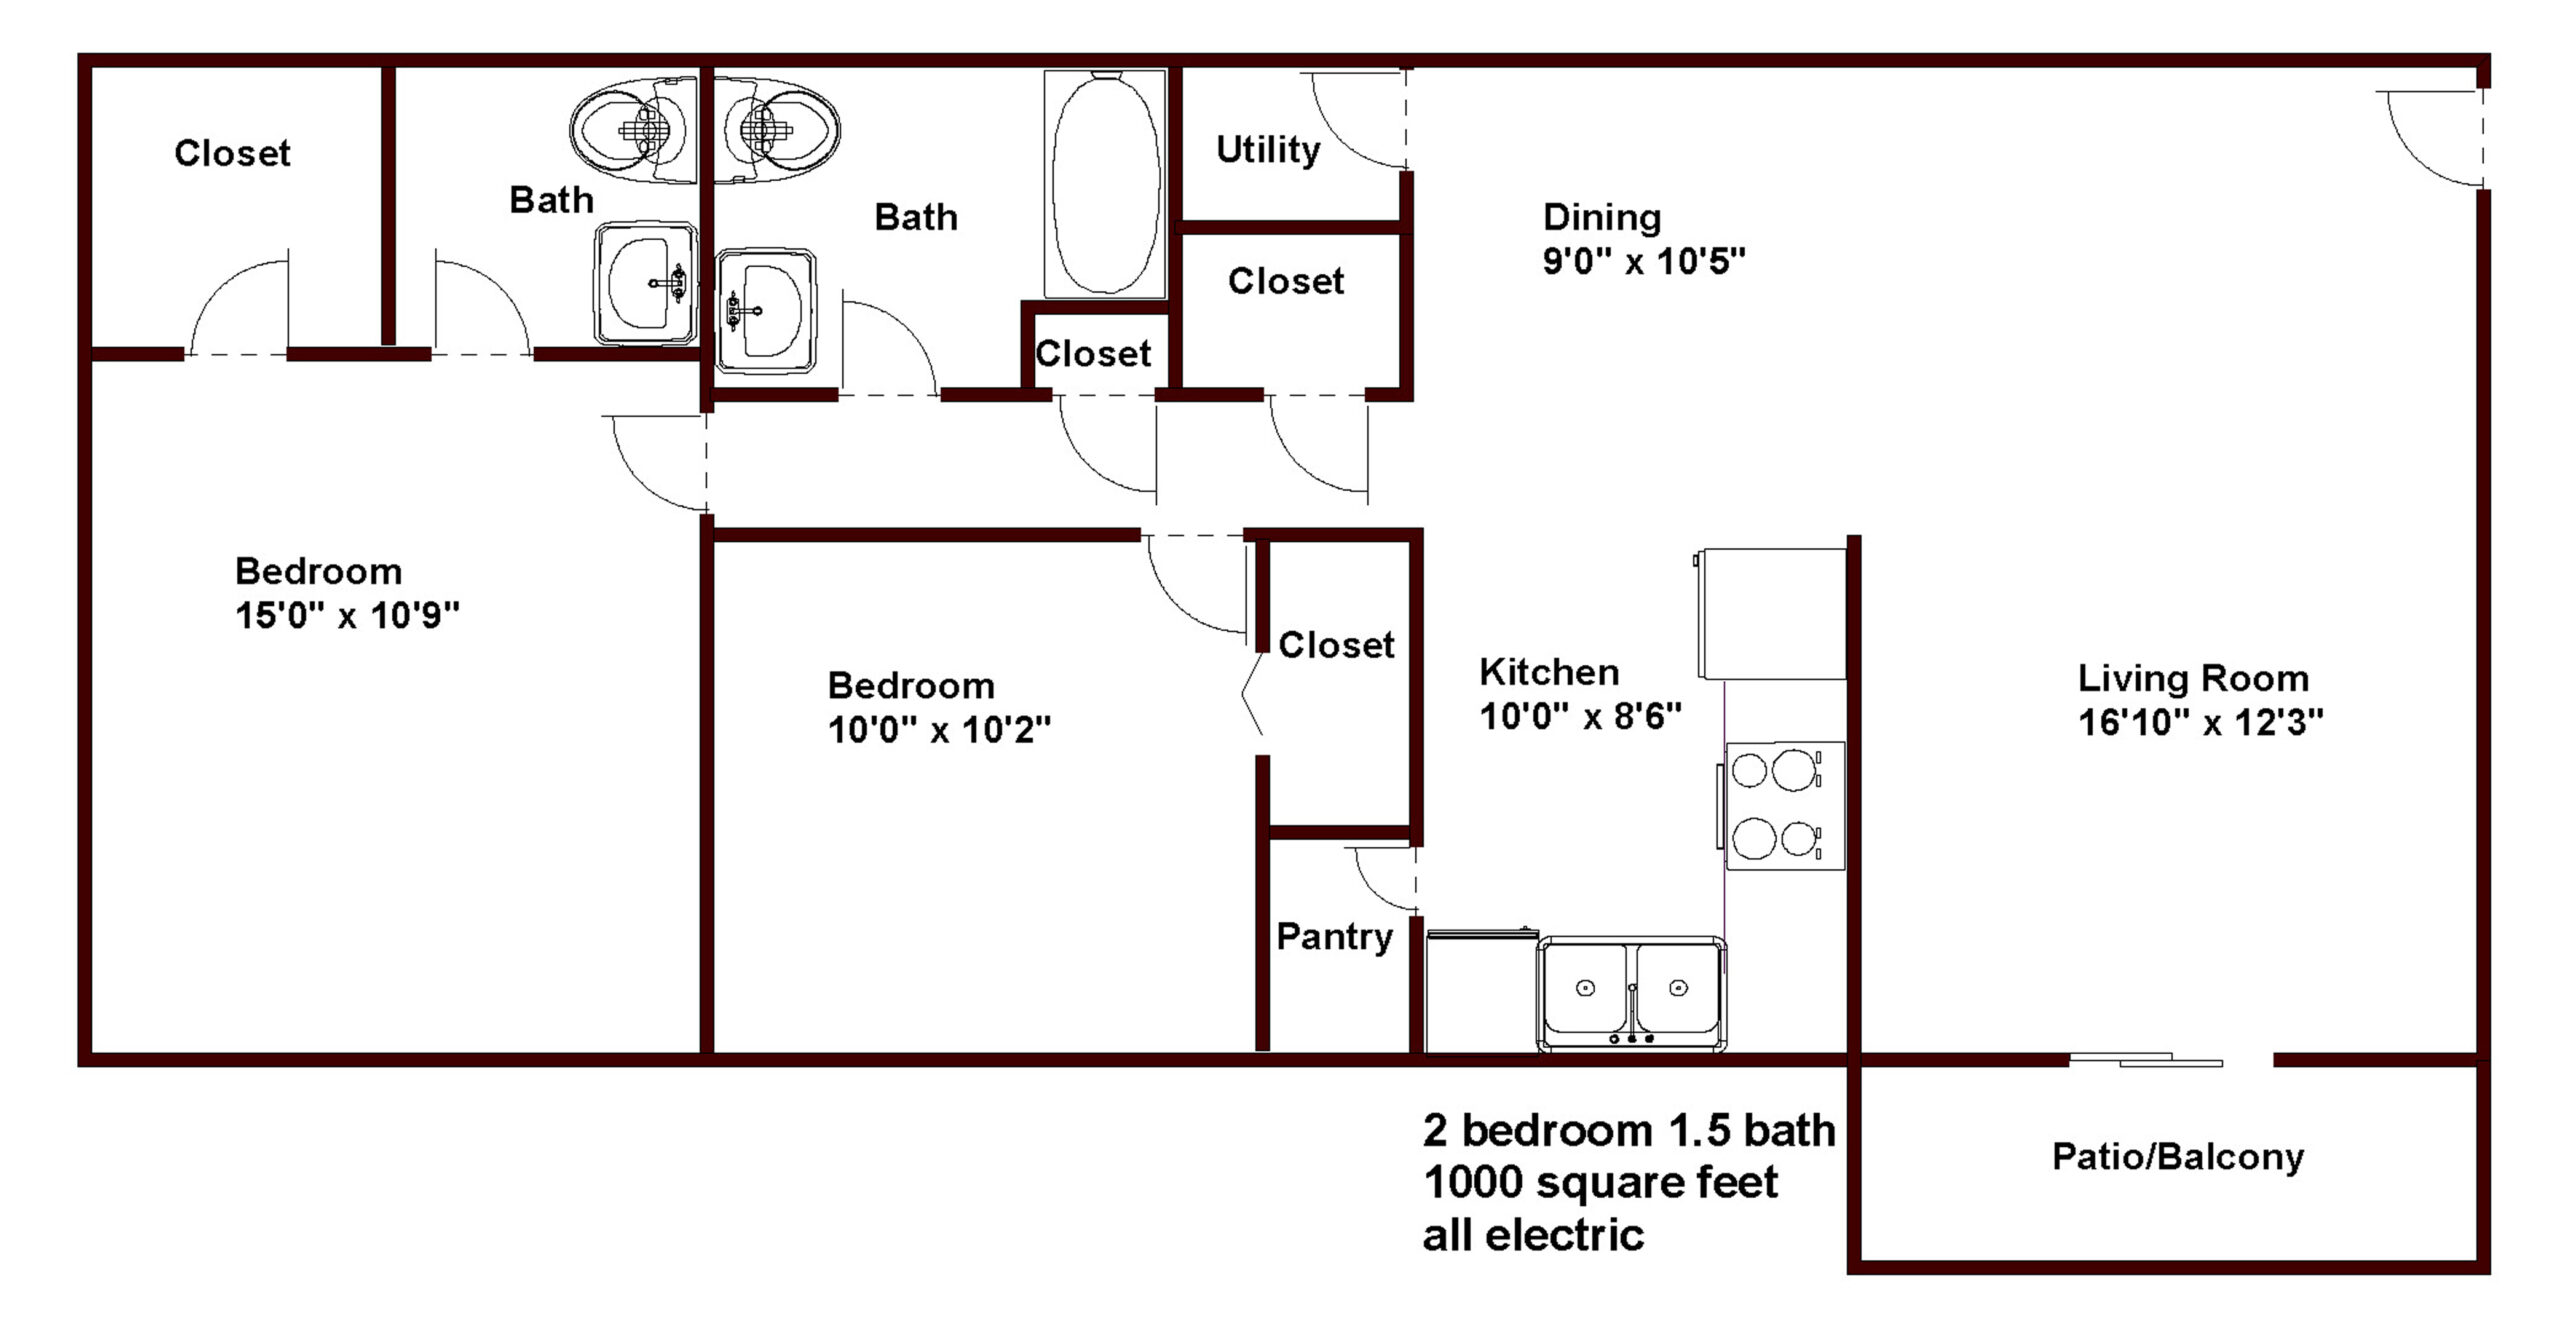 apartments in chapel hill 2 bedroom 1/5 bath floor plan